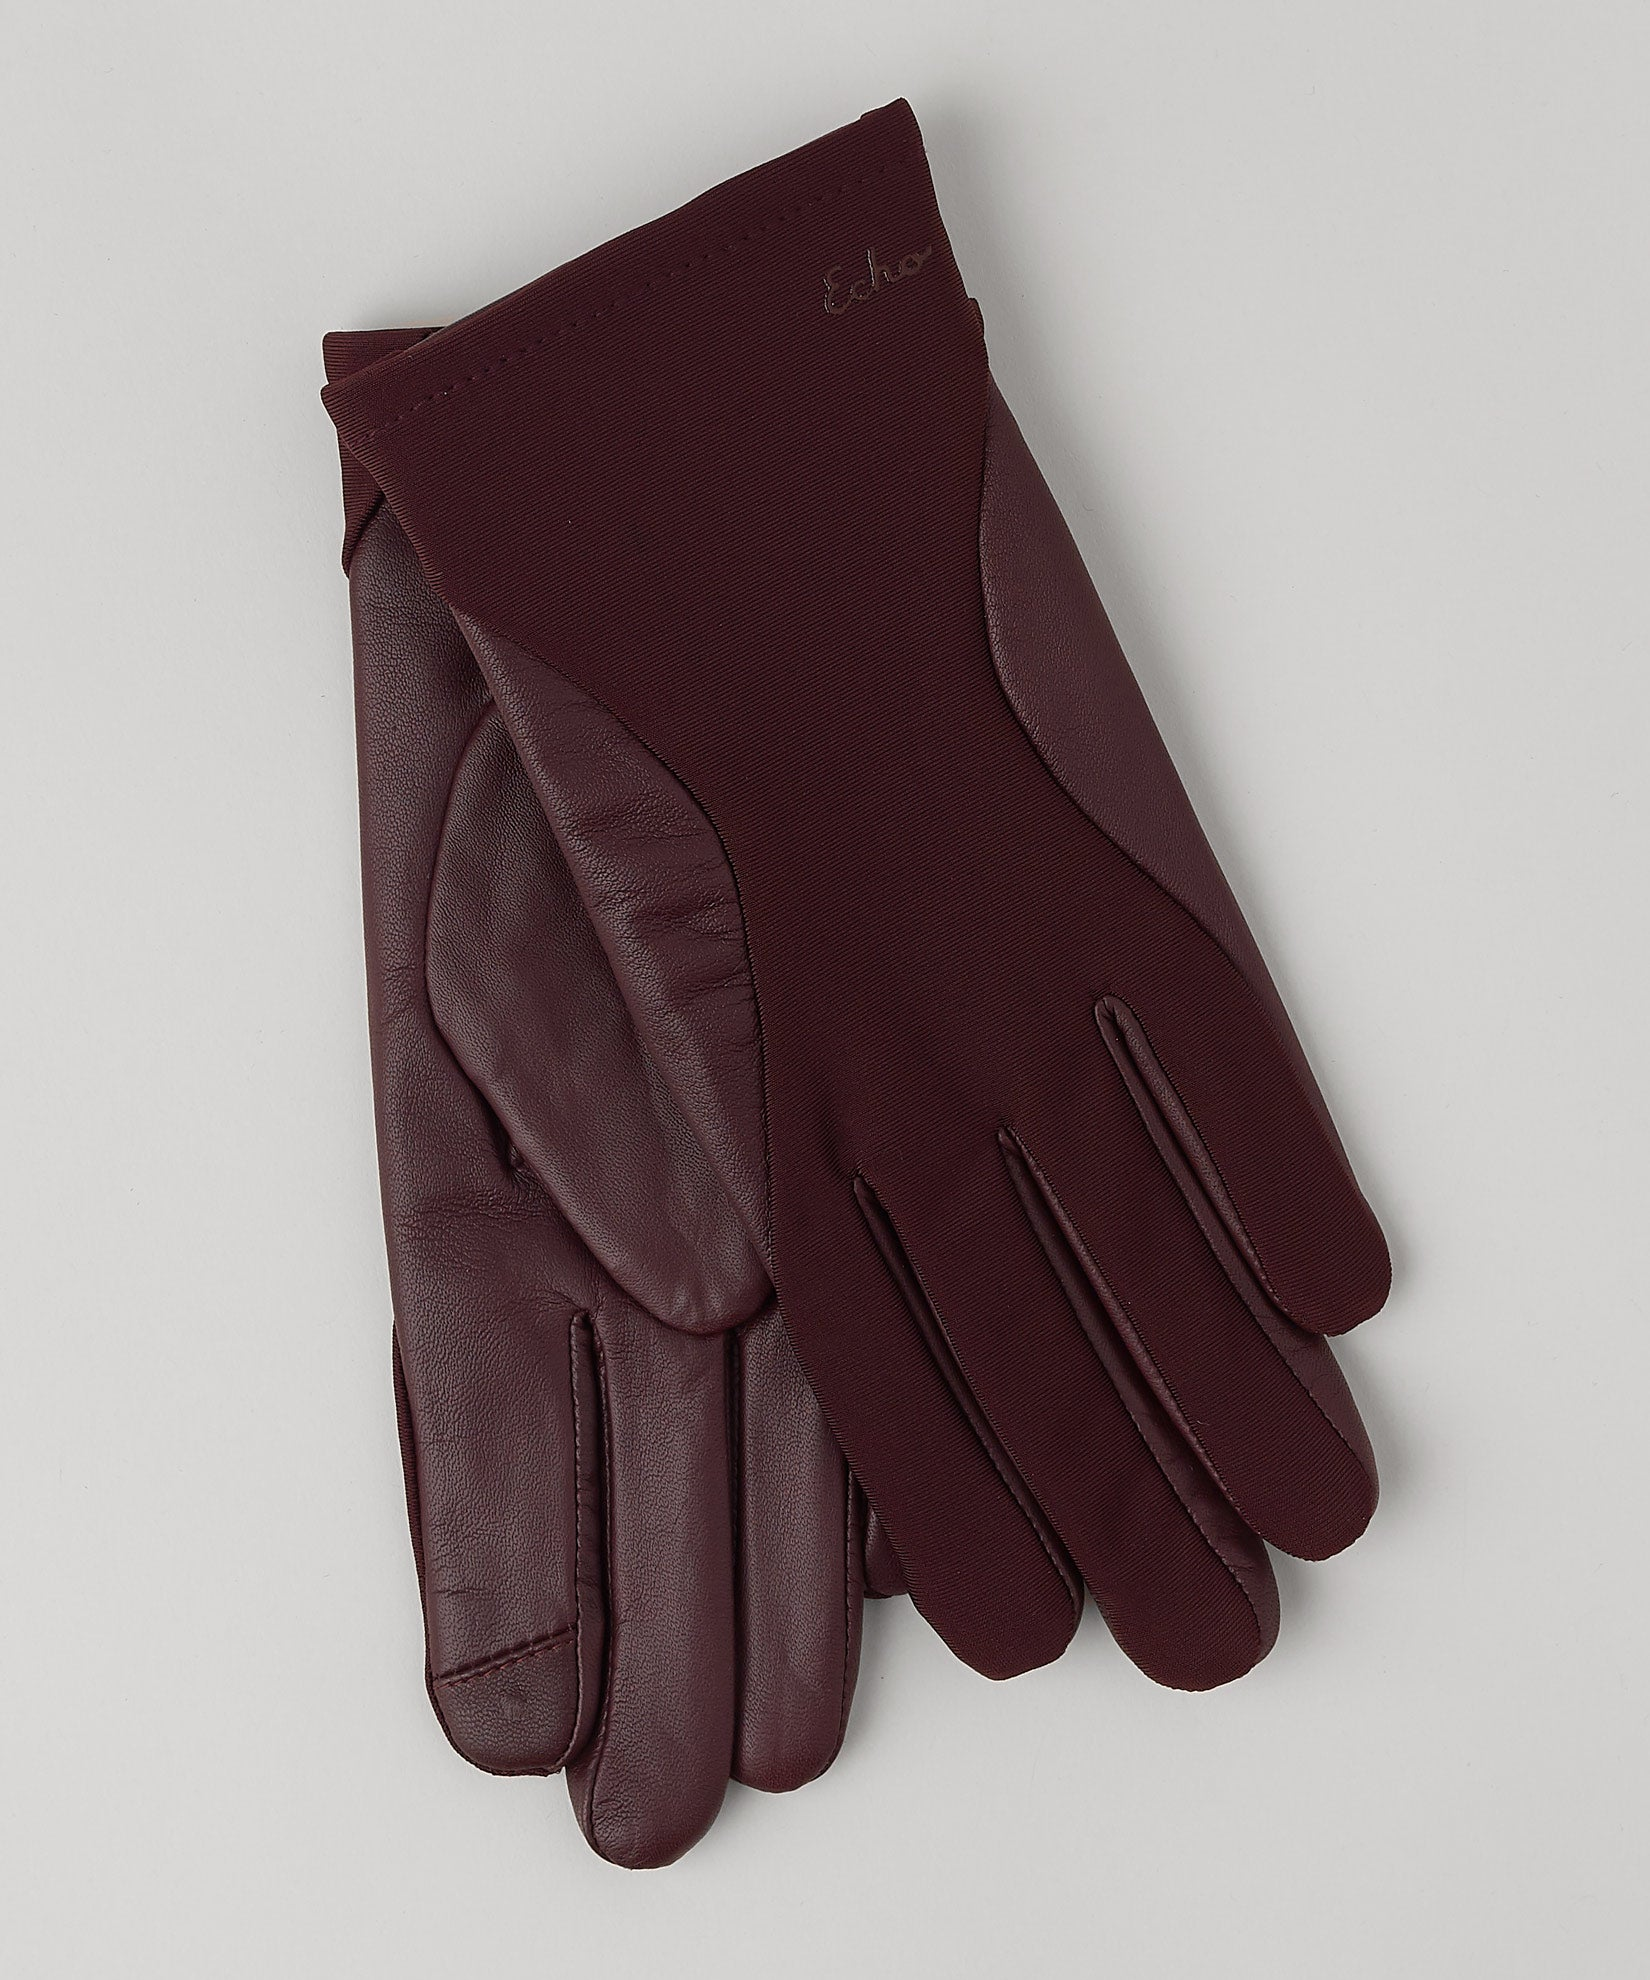 Fig - Contour Leather Superfit Glove